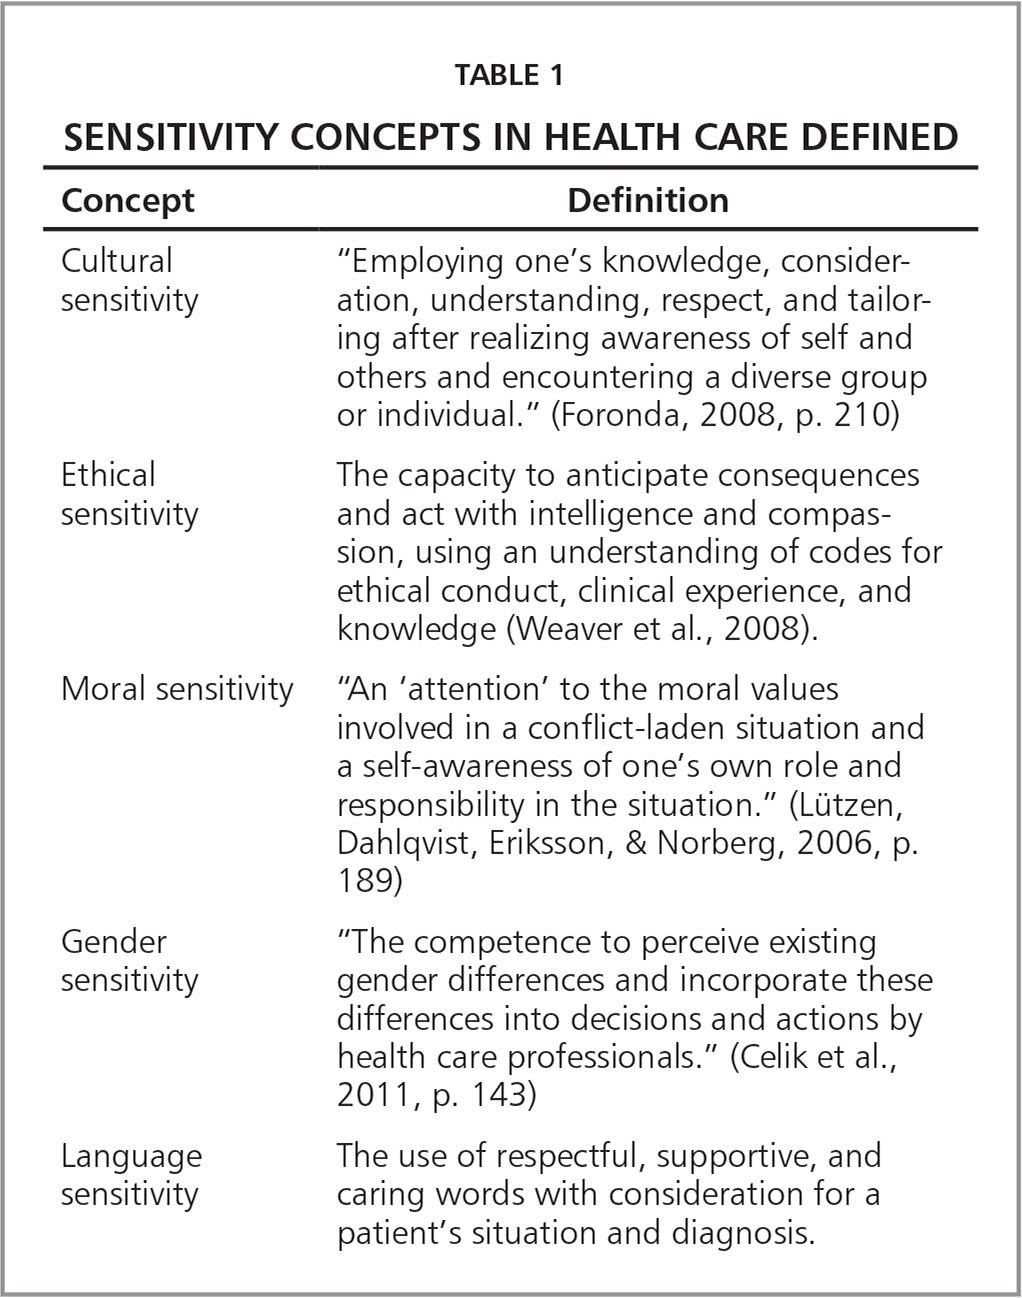 Sensitivity Concepts in Health Care Defined